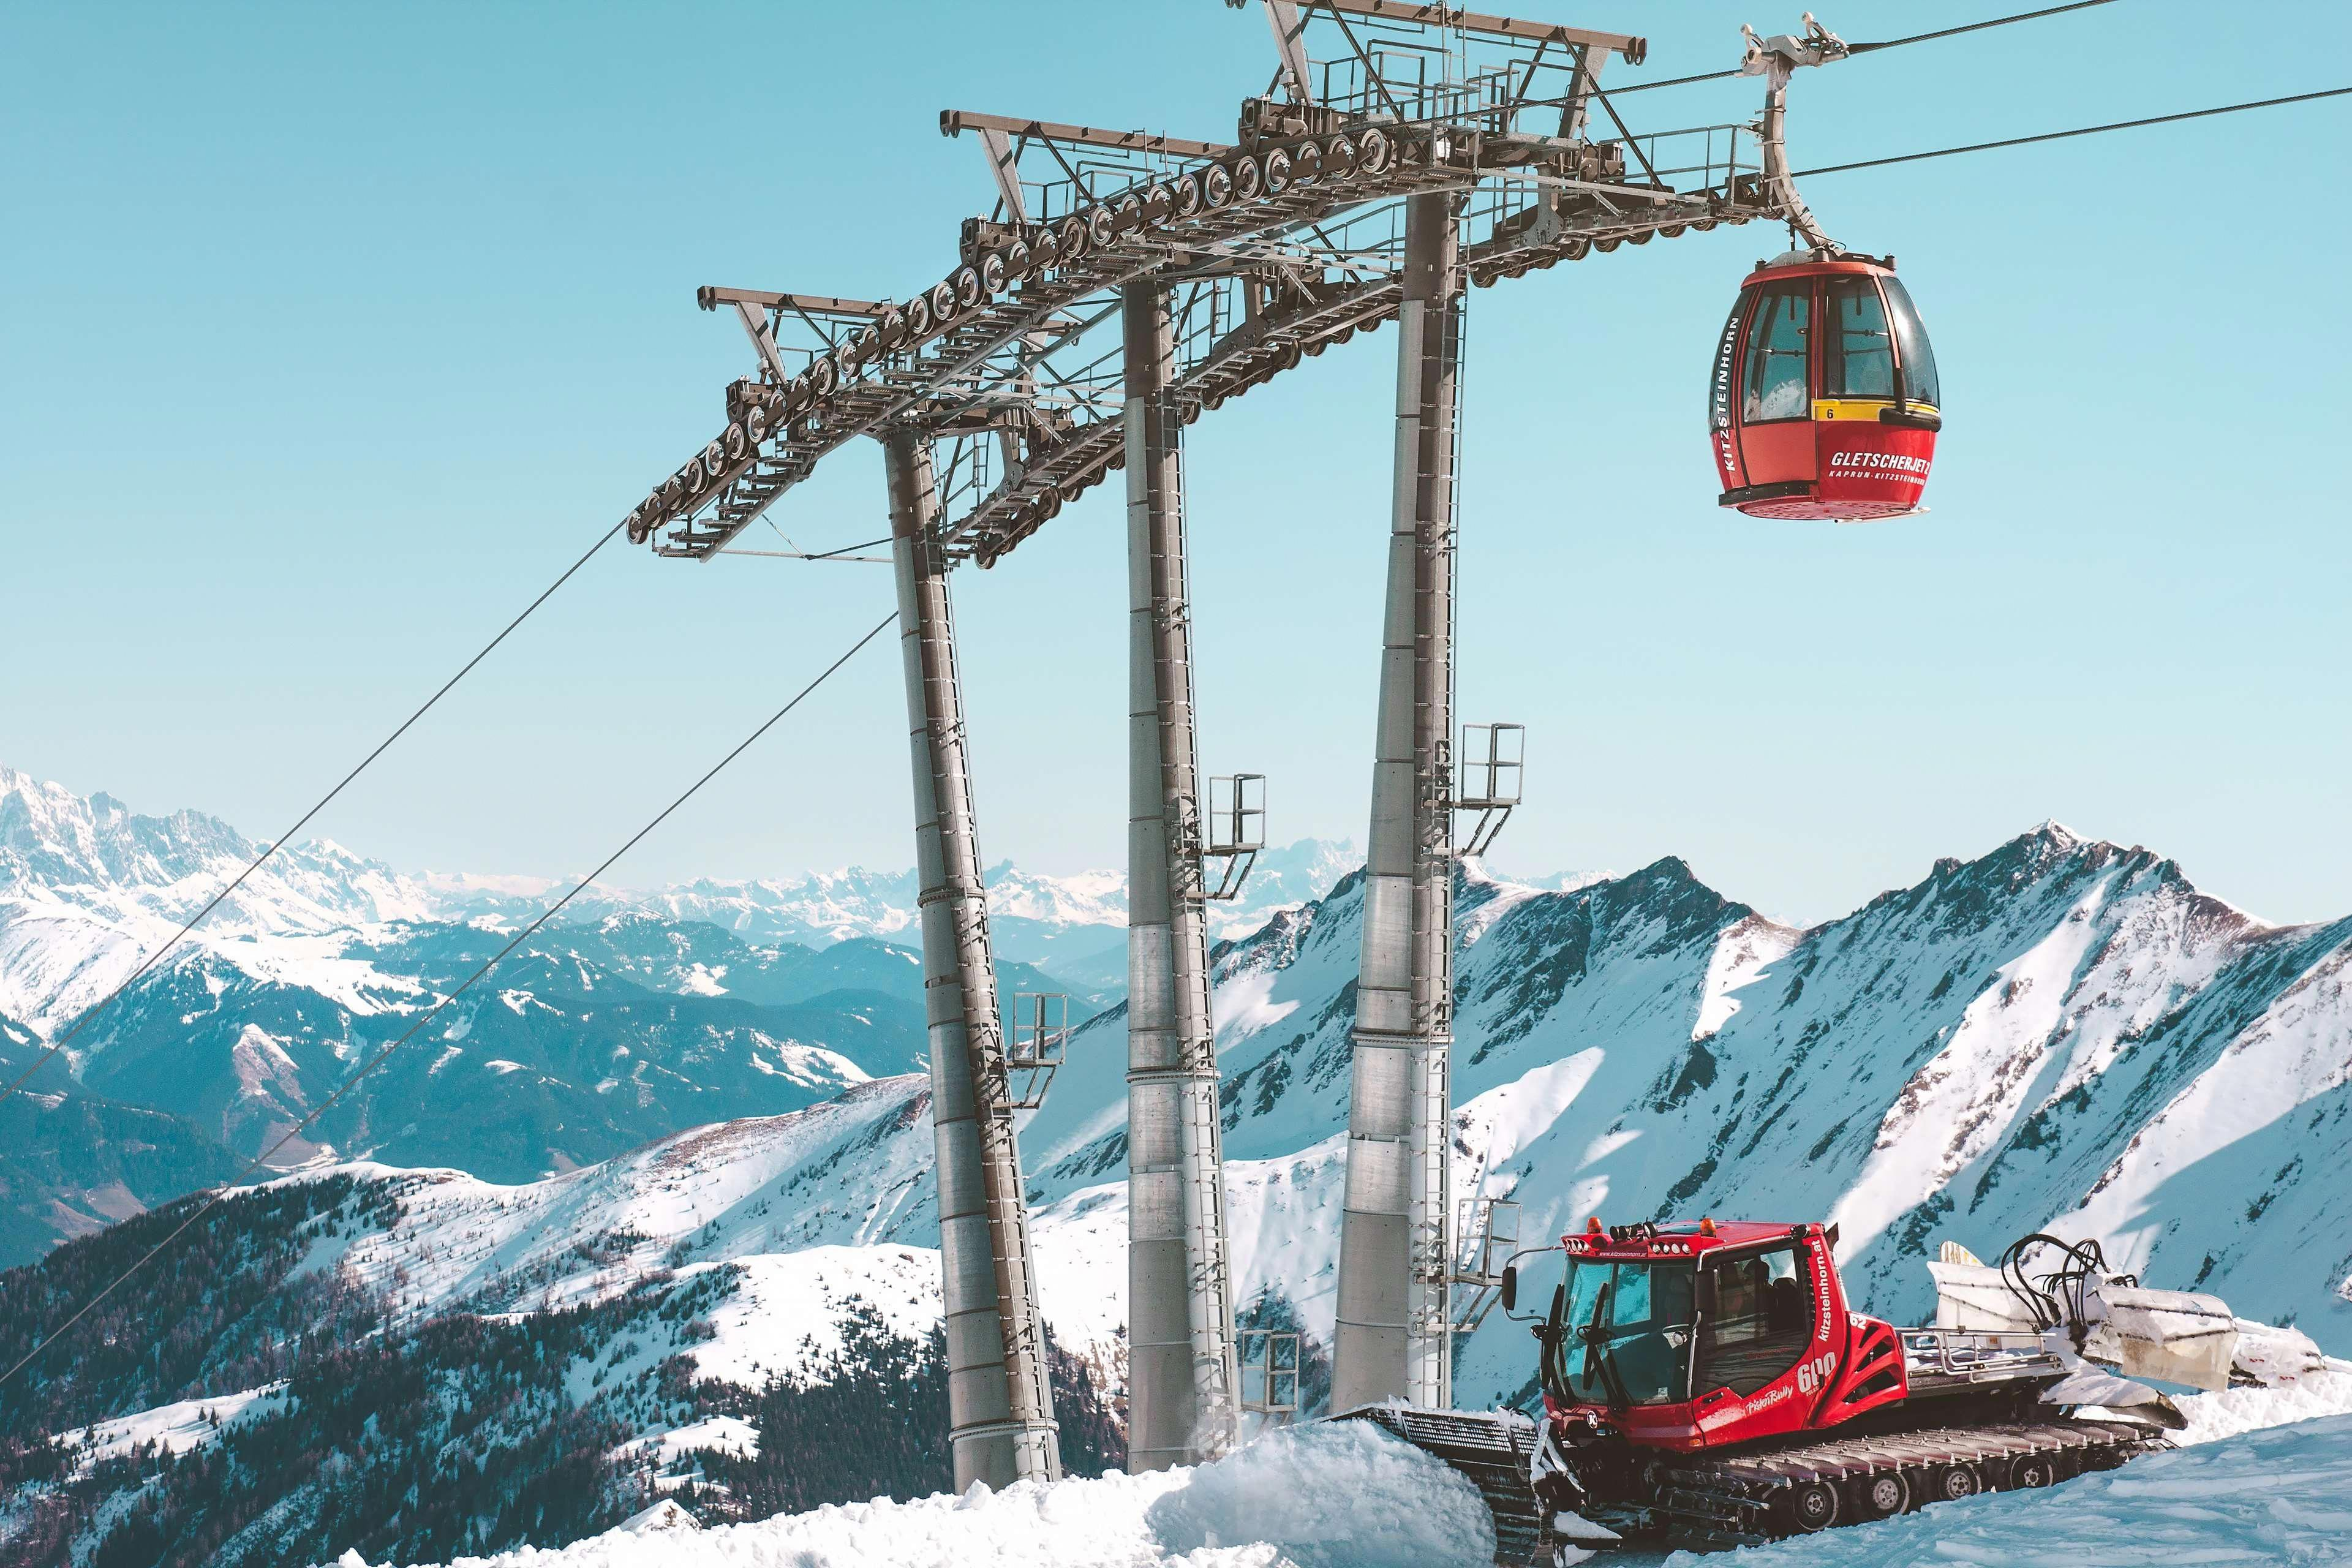 Adventure Alpine Cable Car Cold High Ice Landscape Lift Mountain Outdoors Resort Scenic Ski Ski Resort Sky Snow Snowplo Scenic Photography Best Scenery Photos Vacation Trips